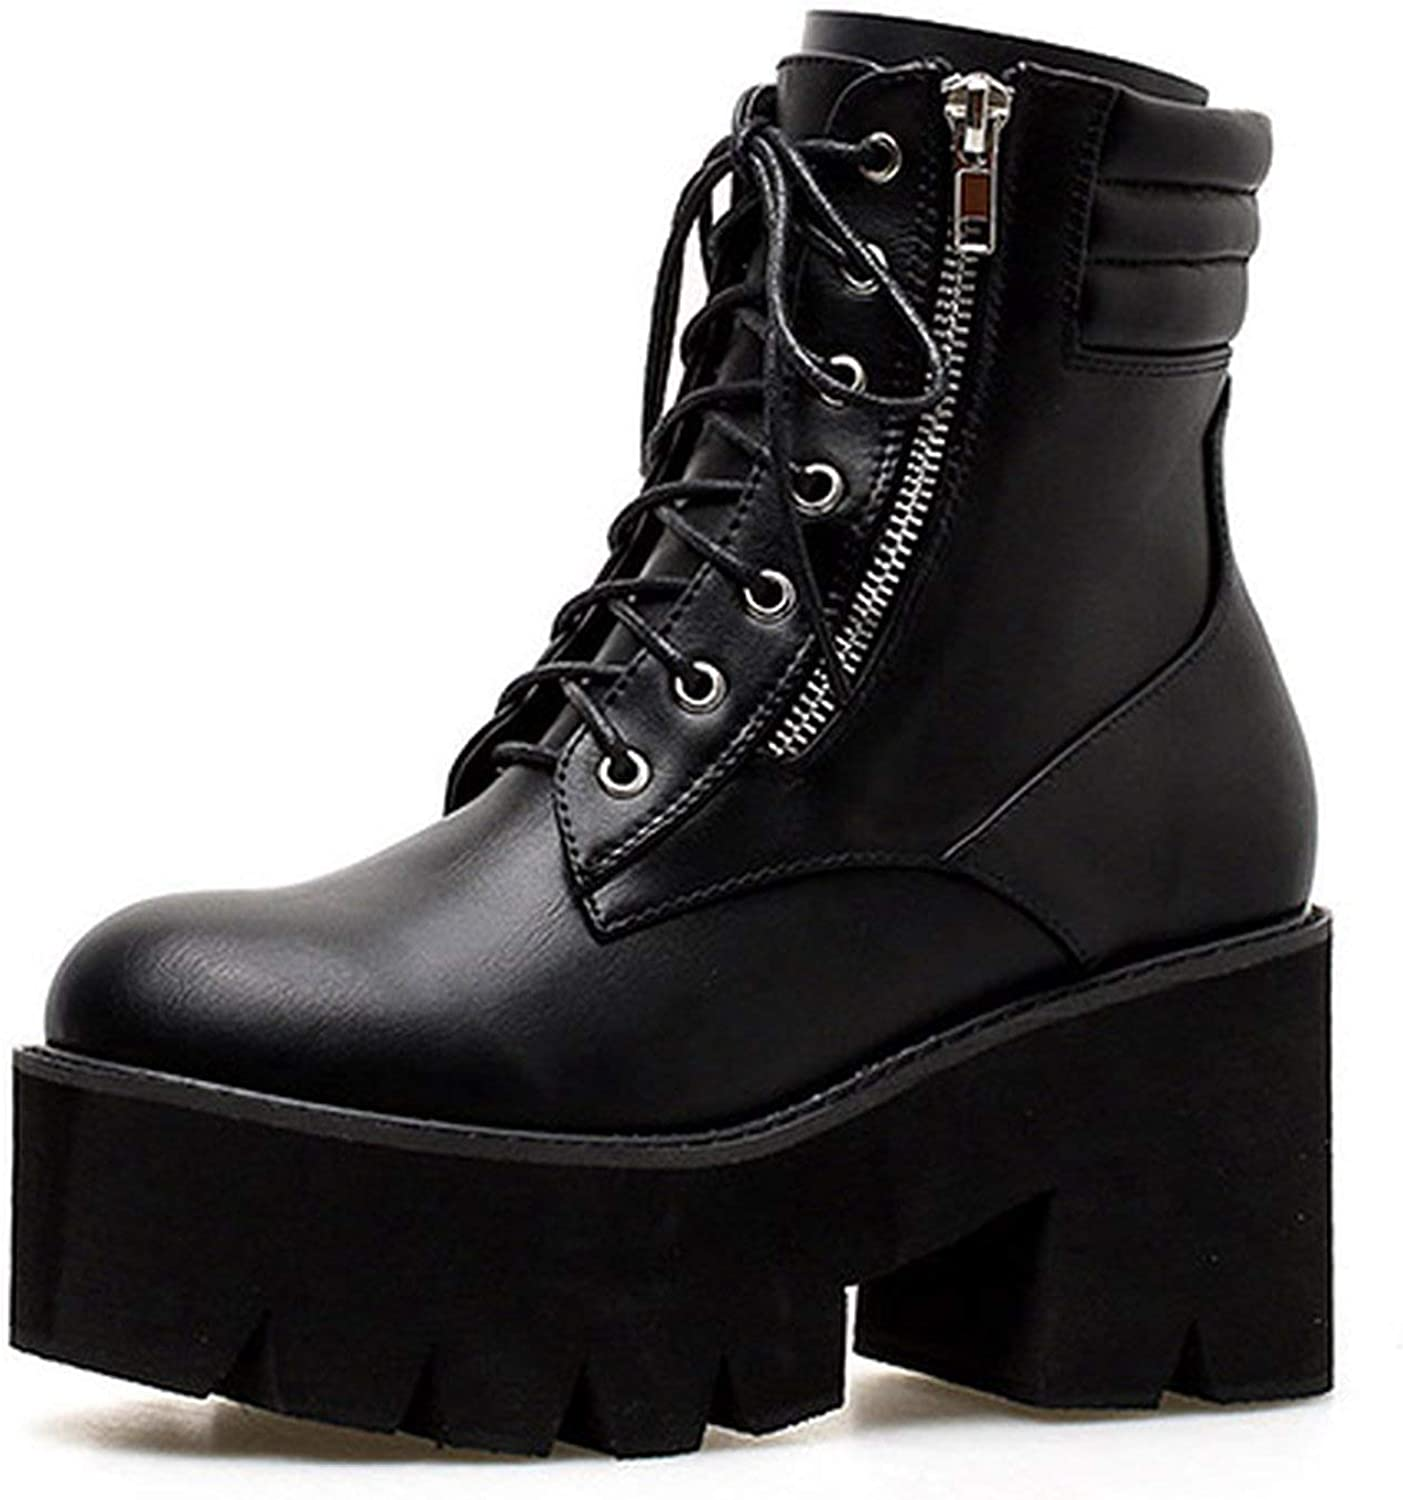 Summer-lavender Autumn Ankle Boots Motorcycle Boots Heels Lacing Round Toe Platform Boots shoes